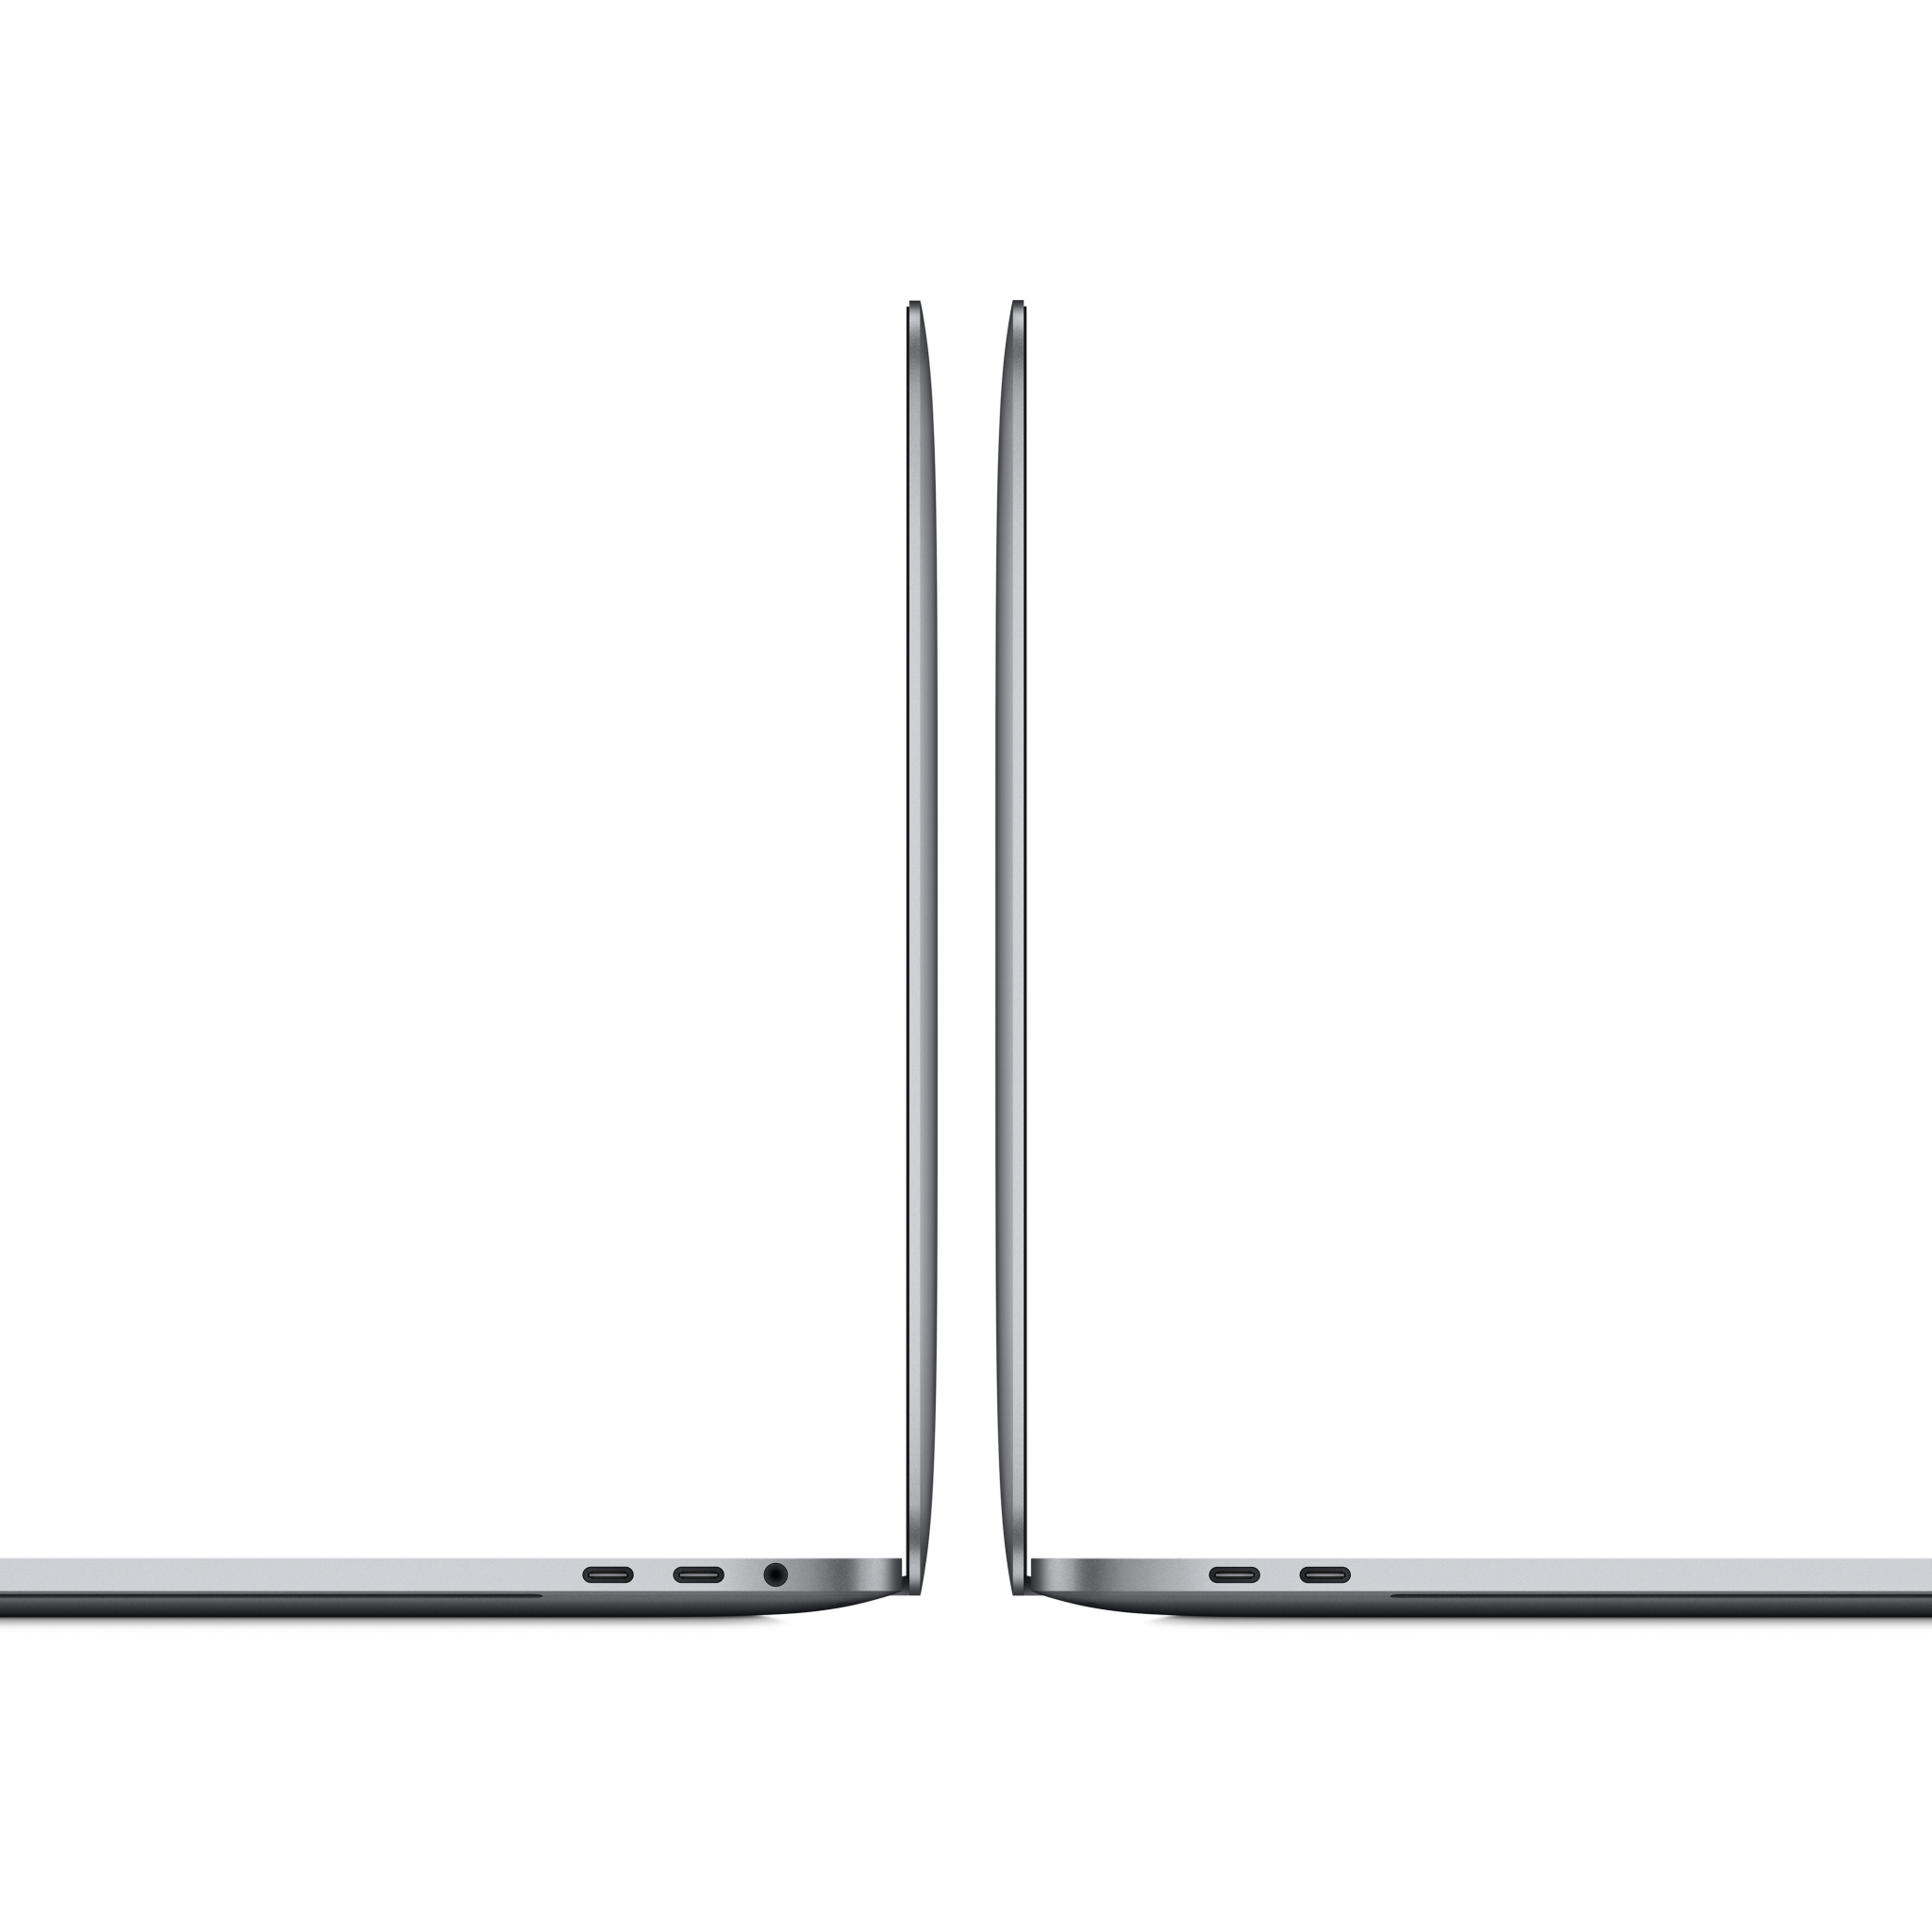 APPLE MacBookPro 13インチ Touch Bar搭載モデル MWP52J/A(MBP 13.3 SG/2.0GHZ QC/16GB/1TB)